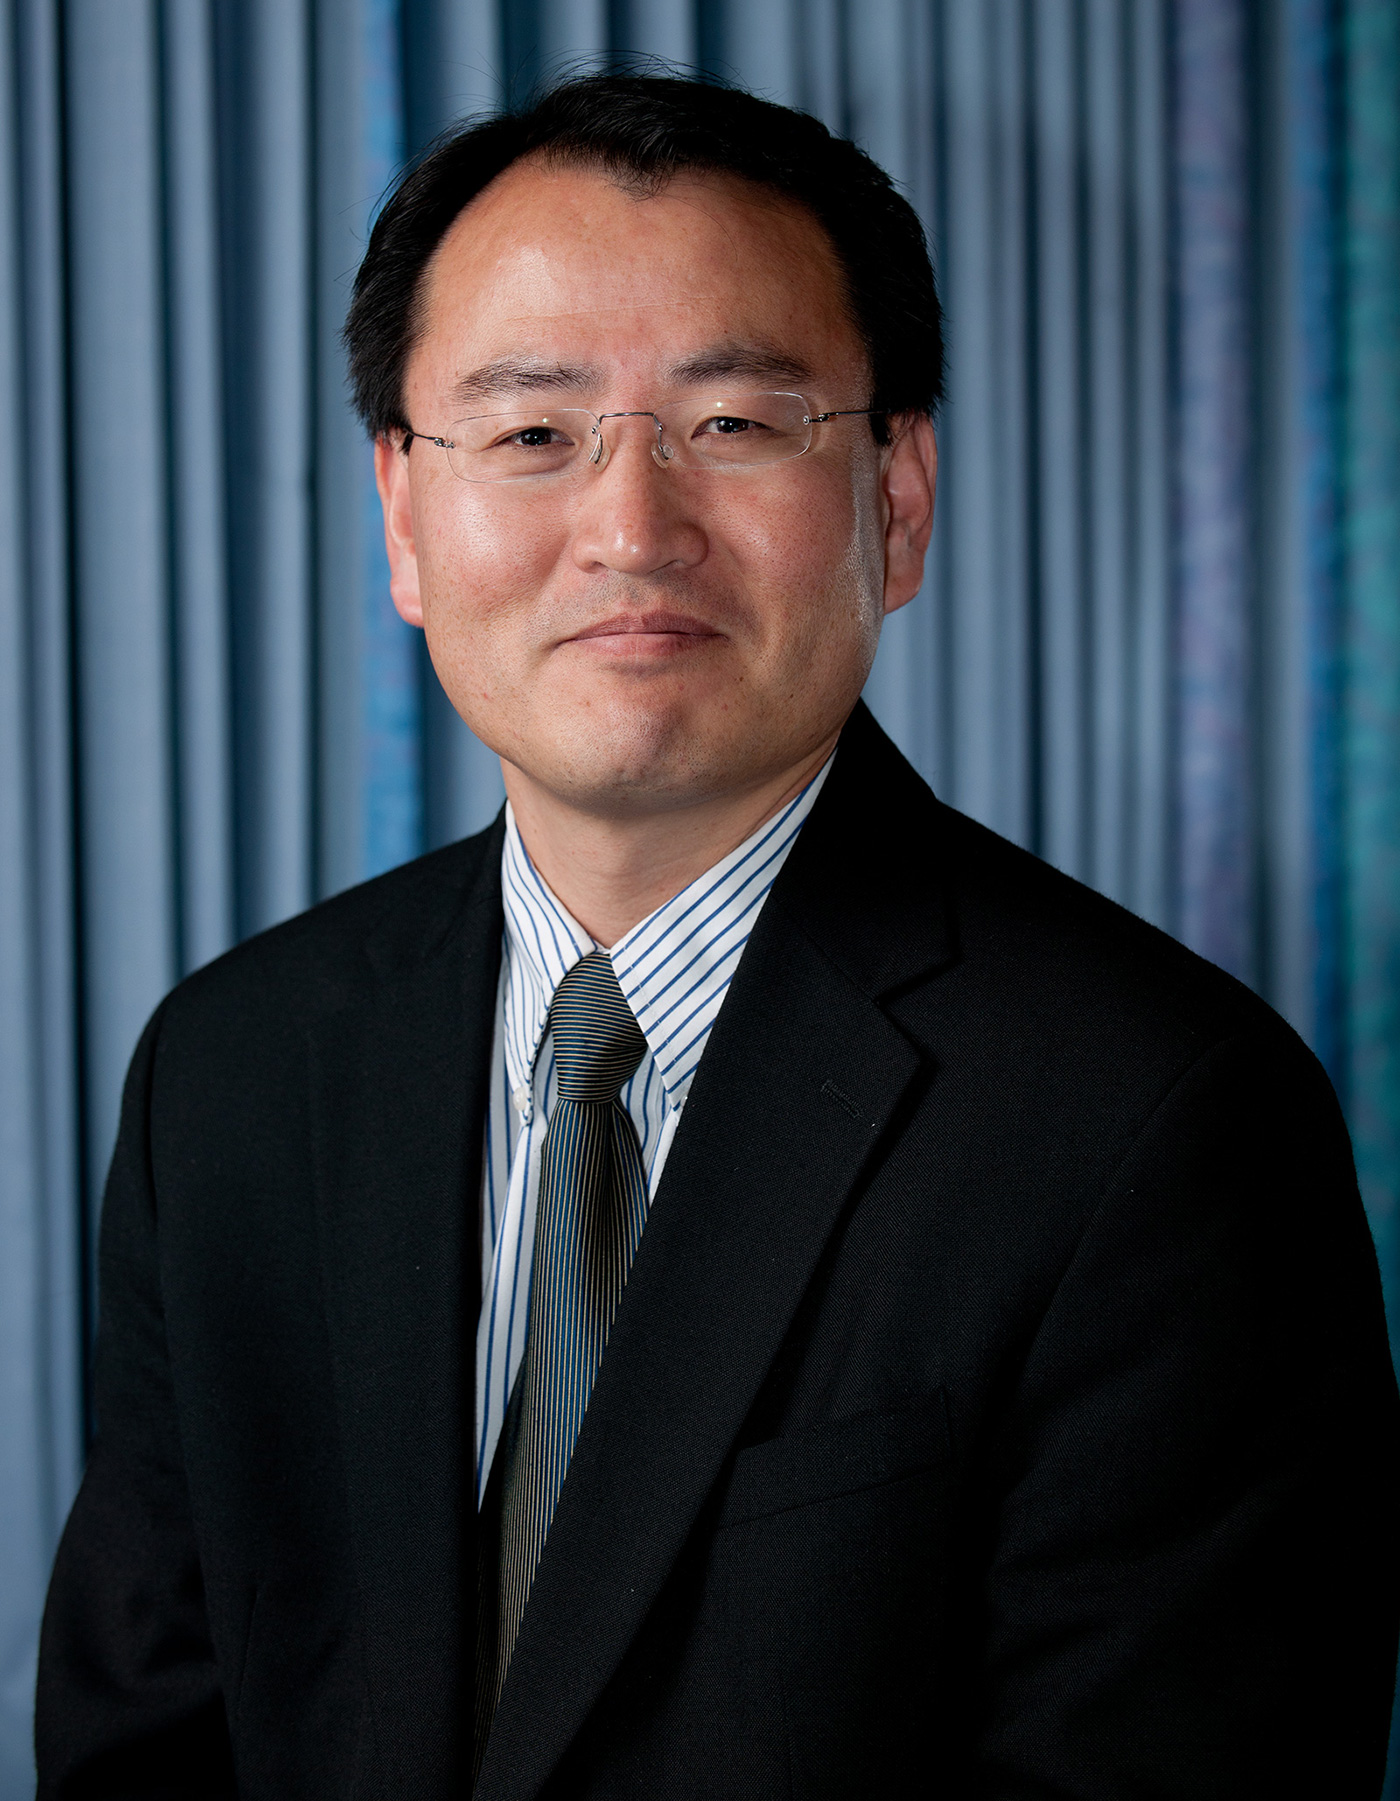 Seongkyu Yoon  is a Professor in the Francis College of Engineering, Chemical Engineering Department.